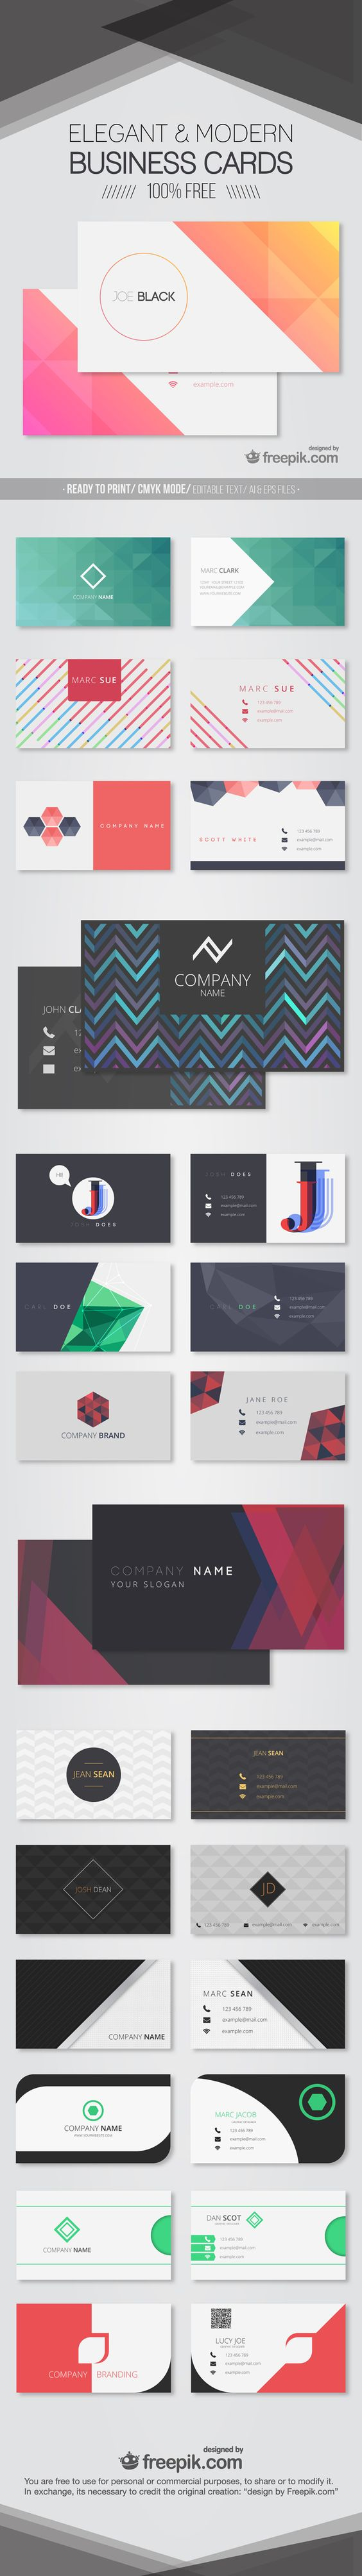 """Want to learn how to create amazing business cards? Download for FREE """"The Complete Guide to Business Cards"""" today at www.allbcards.com. Limited time offer!!."""